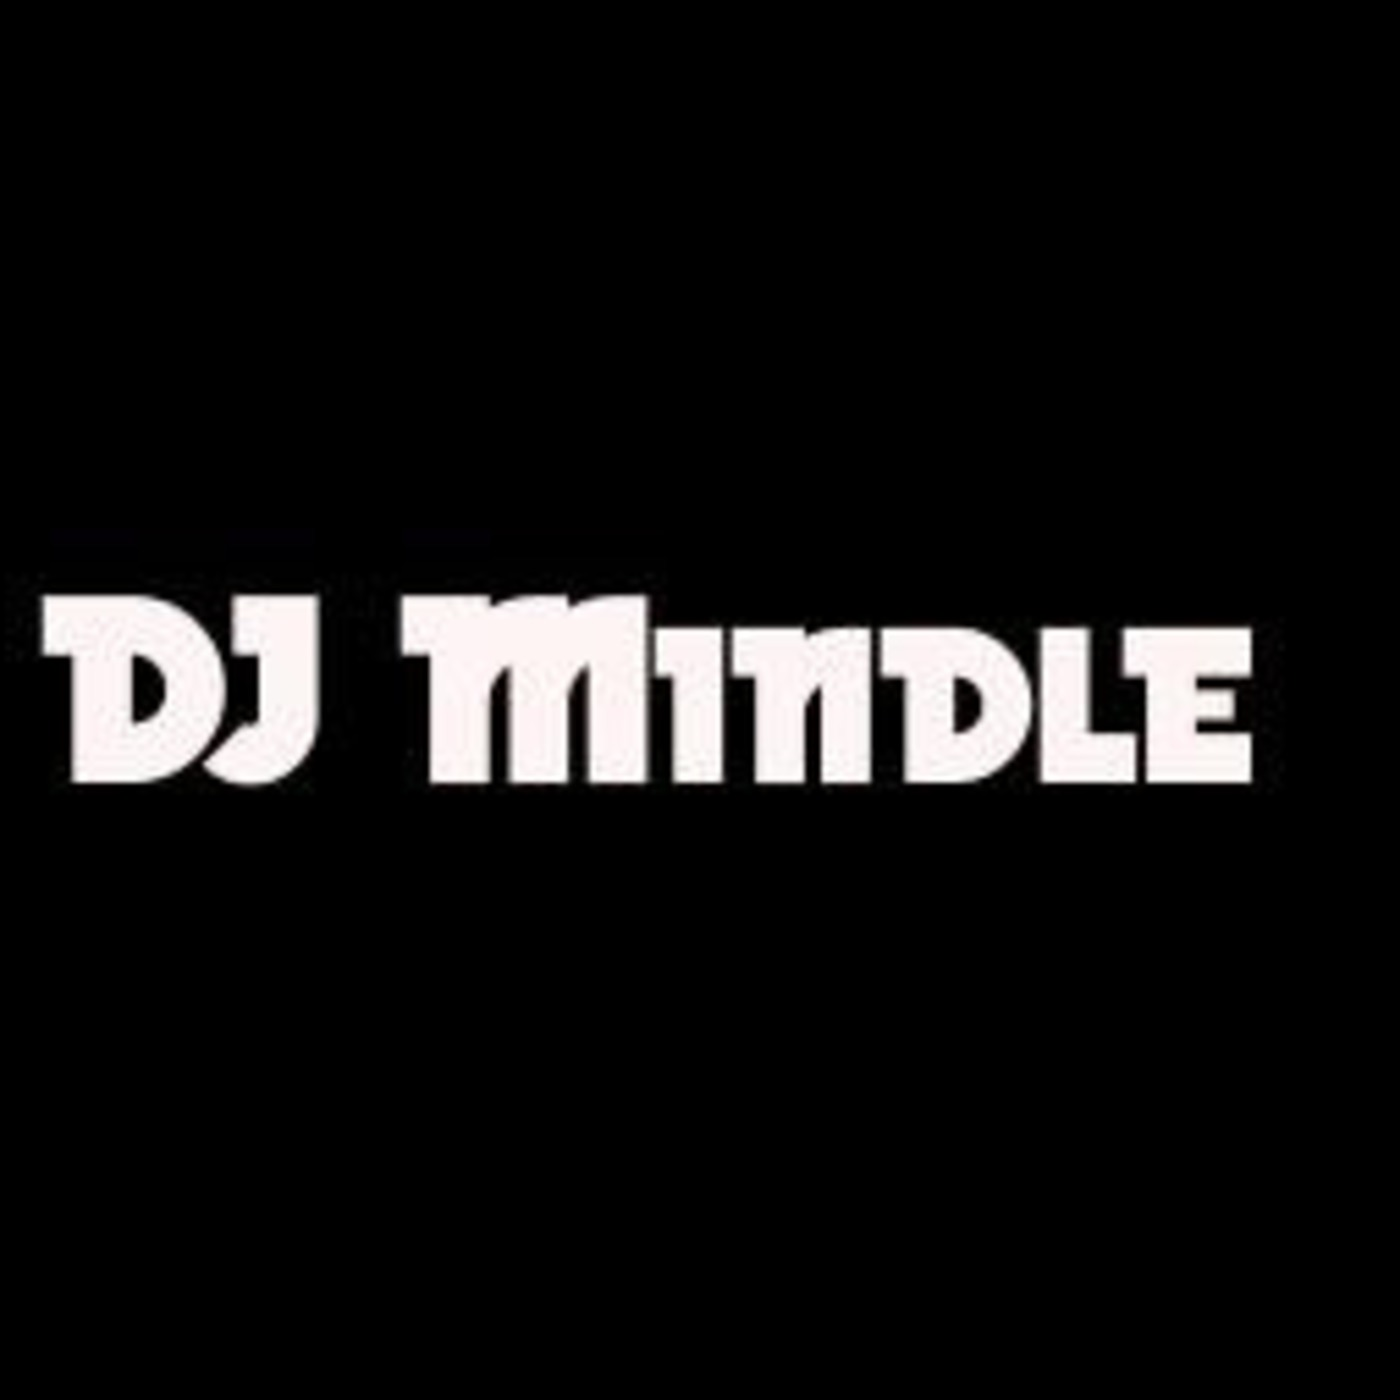 DJ Mindle: Specials and Announcements